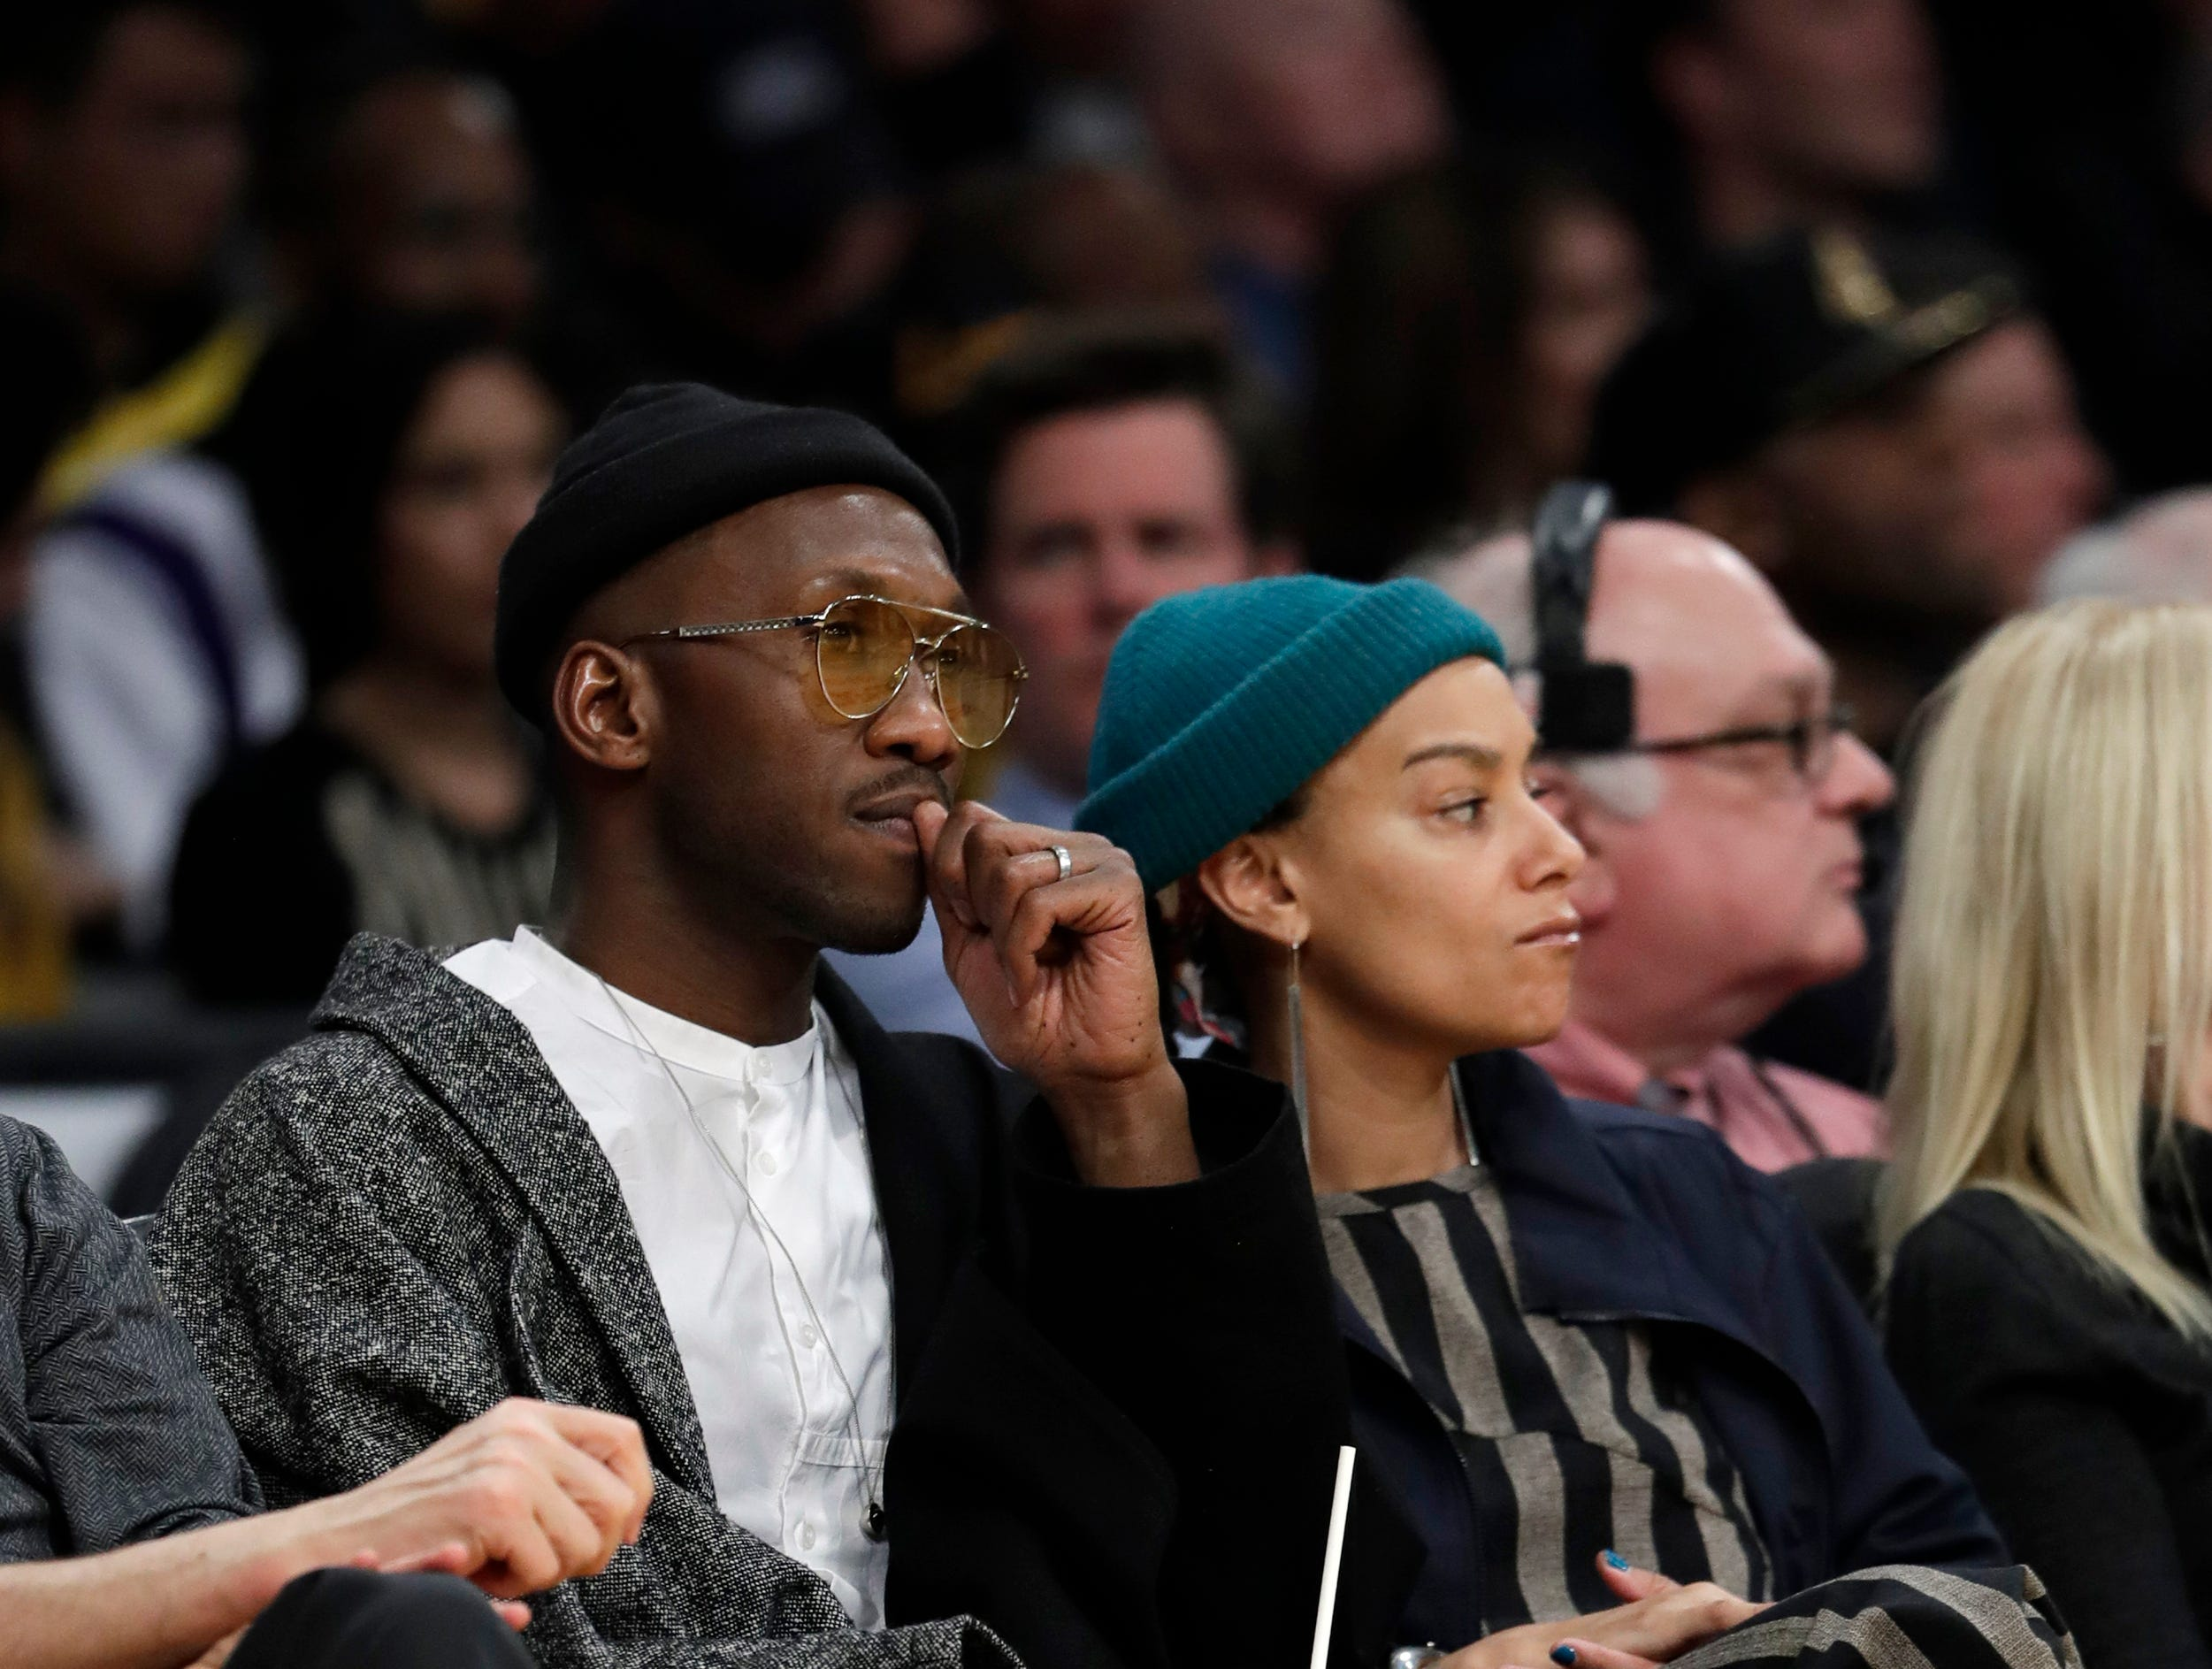 Actor Mahershala Ali, left, watches an NBA basketball game between the Los Angeles Lakers and the Golden State Warriors, Monday, Jan. 21, 2019, in Los Angeles. (AP Photo/Marcio Jose Sanchez) ORG XMIT: LAS110